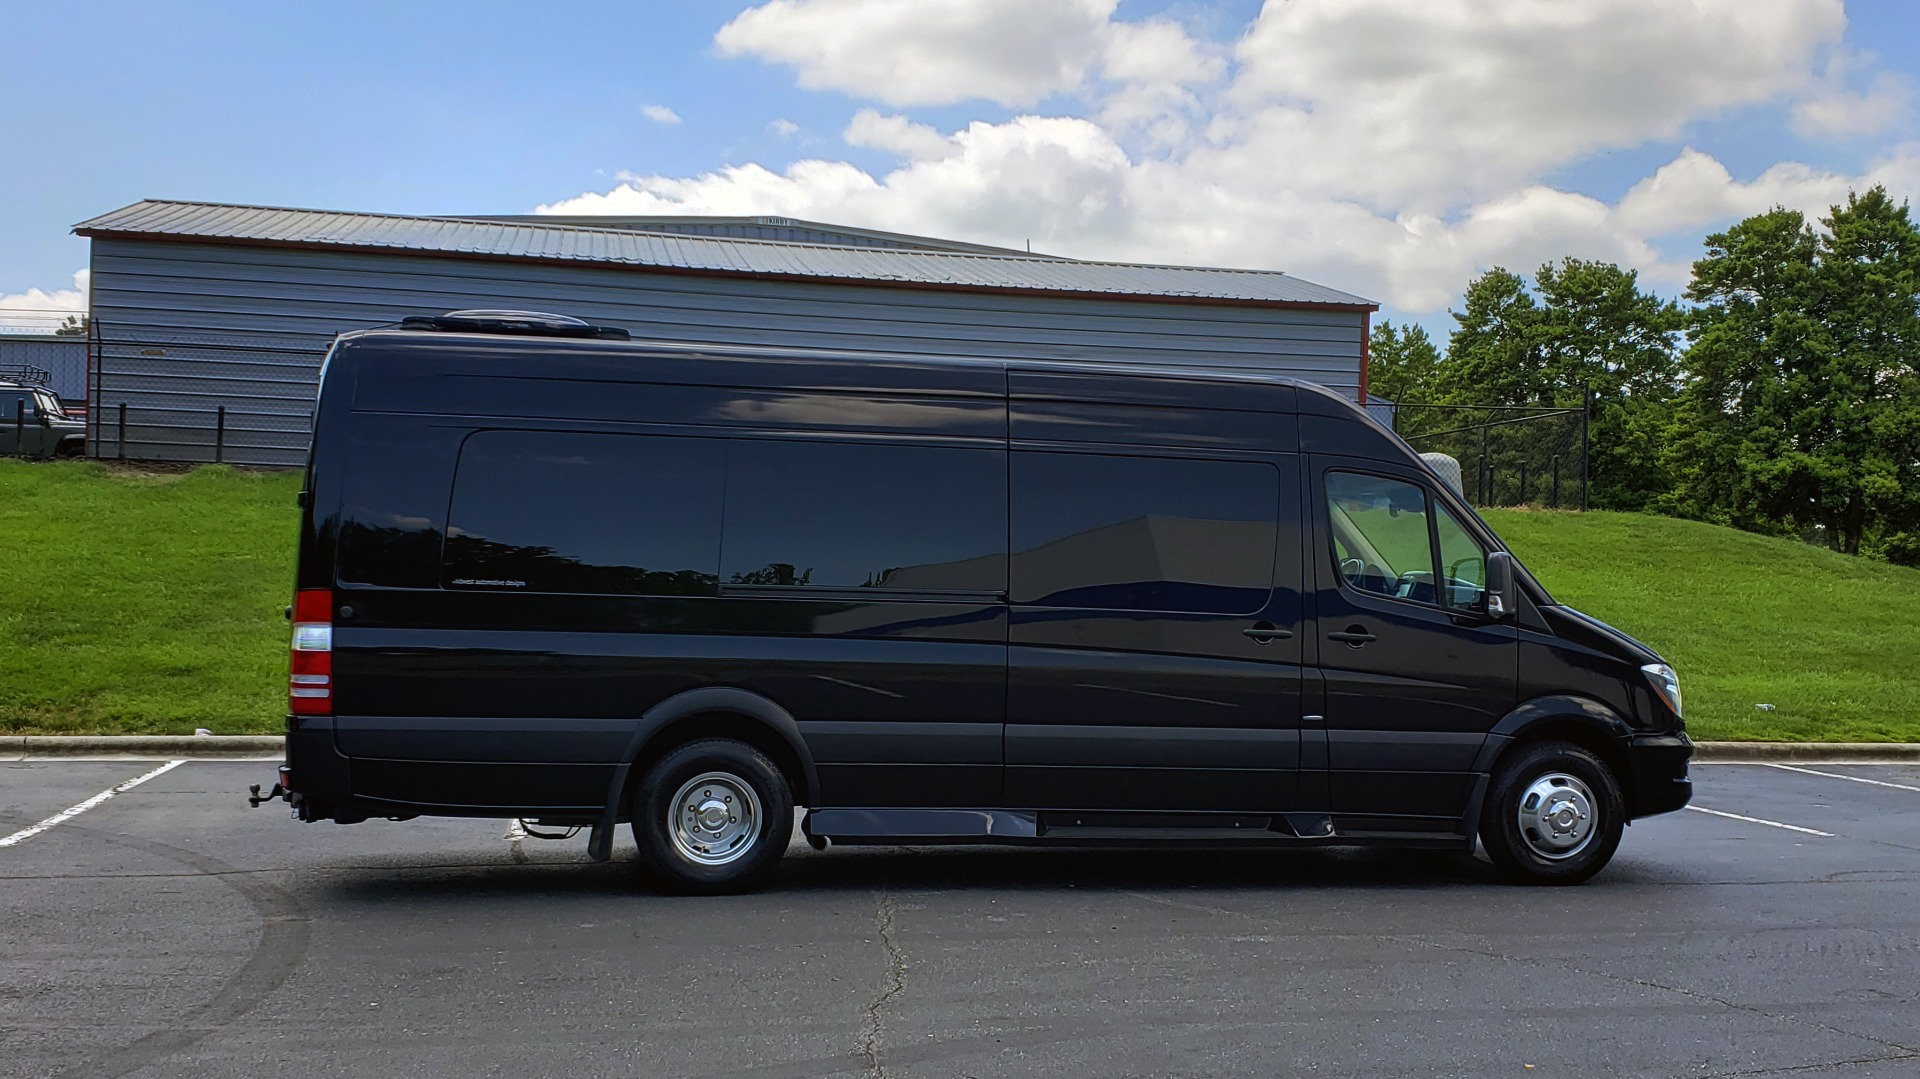 Used 2015 Mercedes-Benz SPRINTER CARGO VAN EXT 3500 170-IN WB / MIDWEST LUXURY CONVERSION for sale $84,995 at Formula Imports in Charlotte NC 28227 5